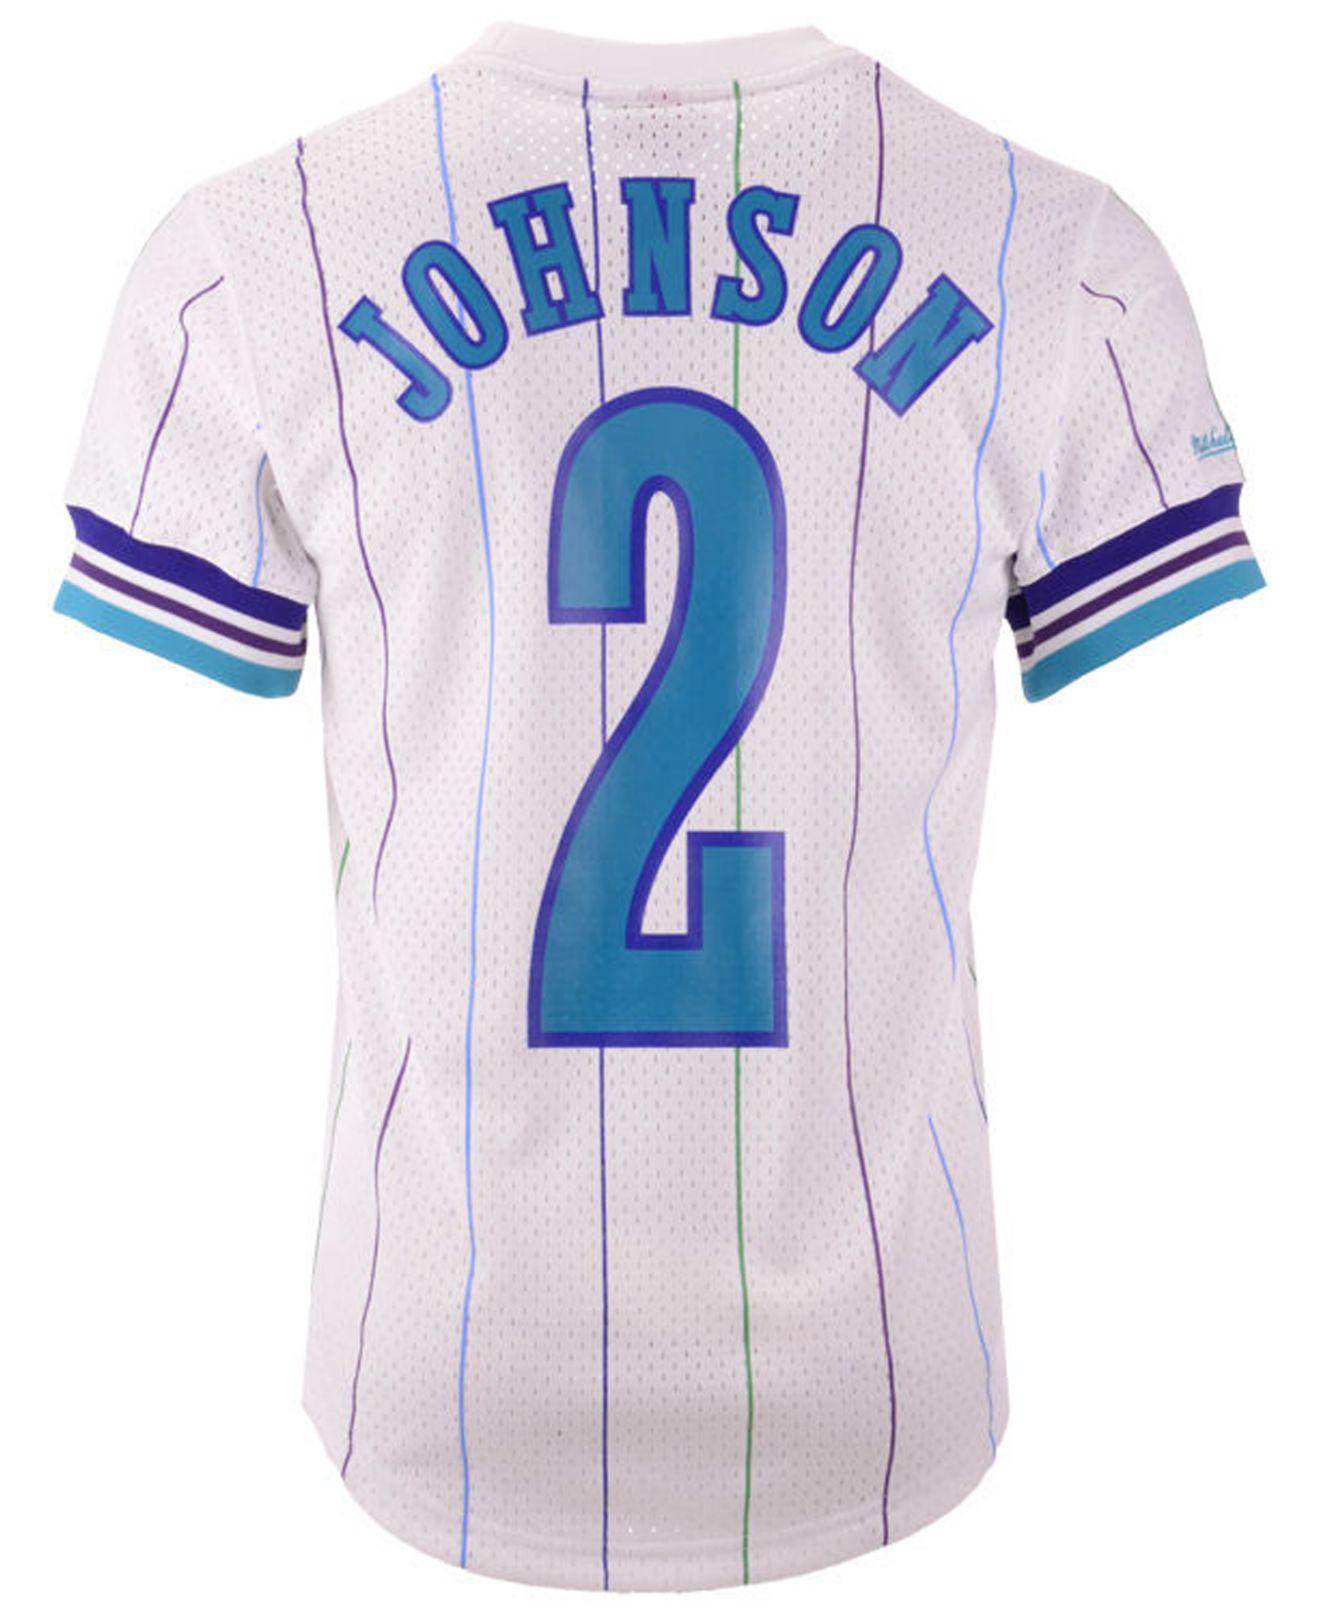 official photos 106ac c6dbd Men's White Larry Johnson Charlotte Hornets Name And Number Mesh Crewneck  Jersey